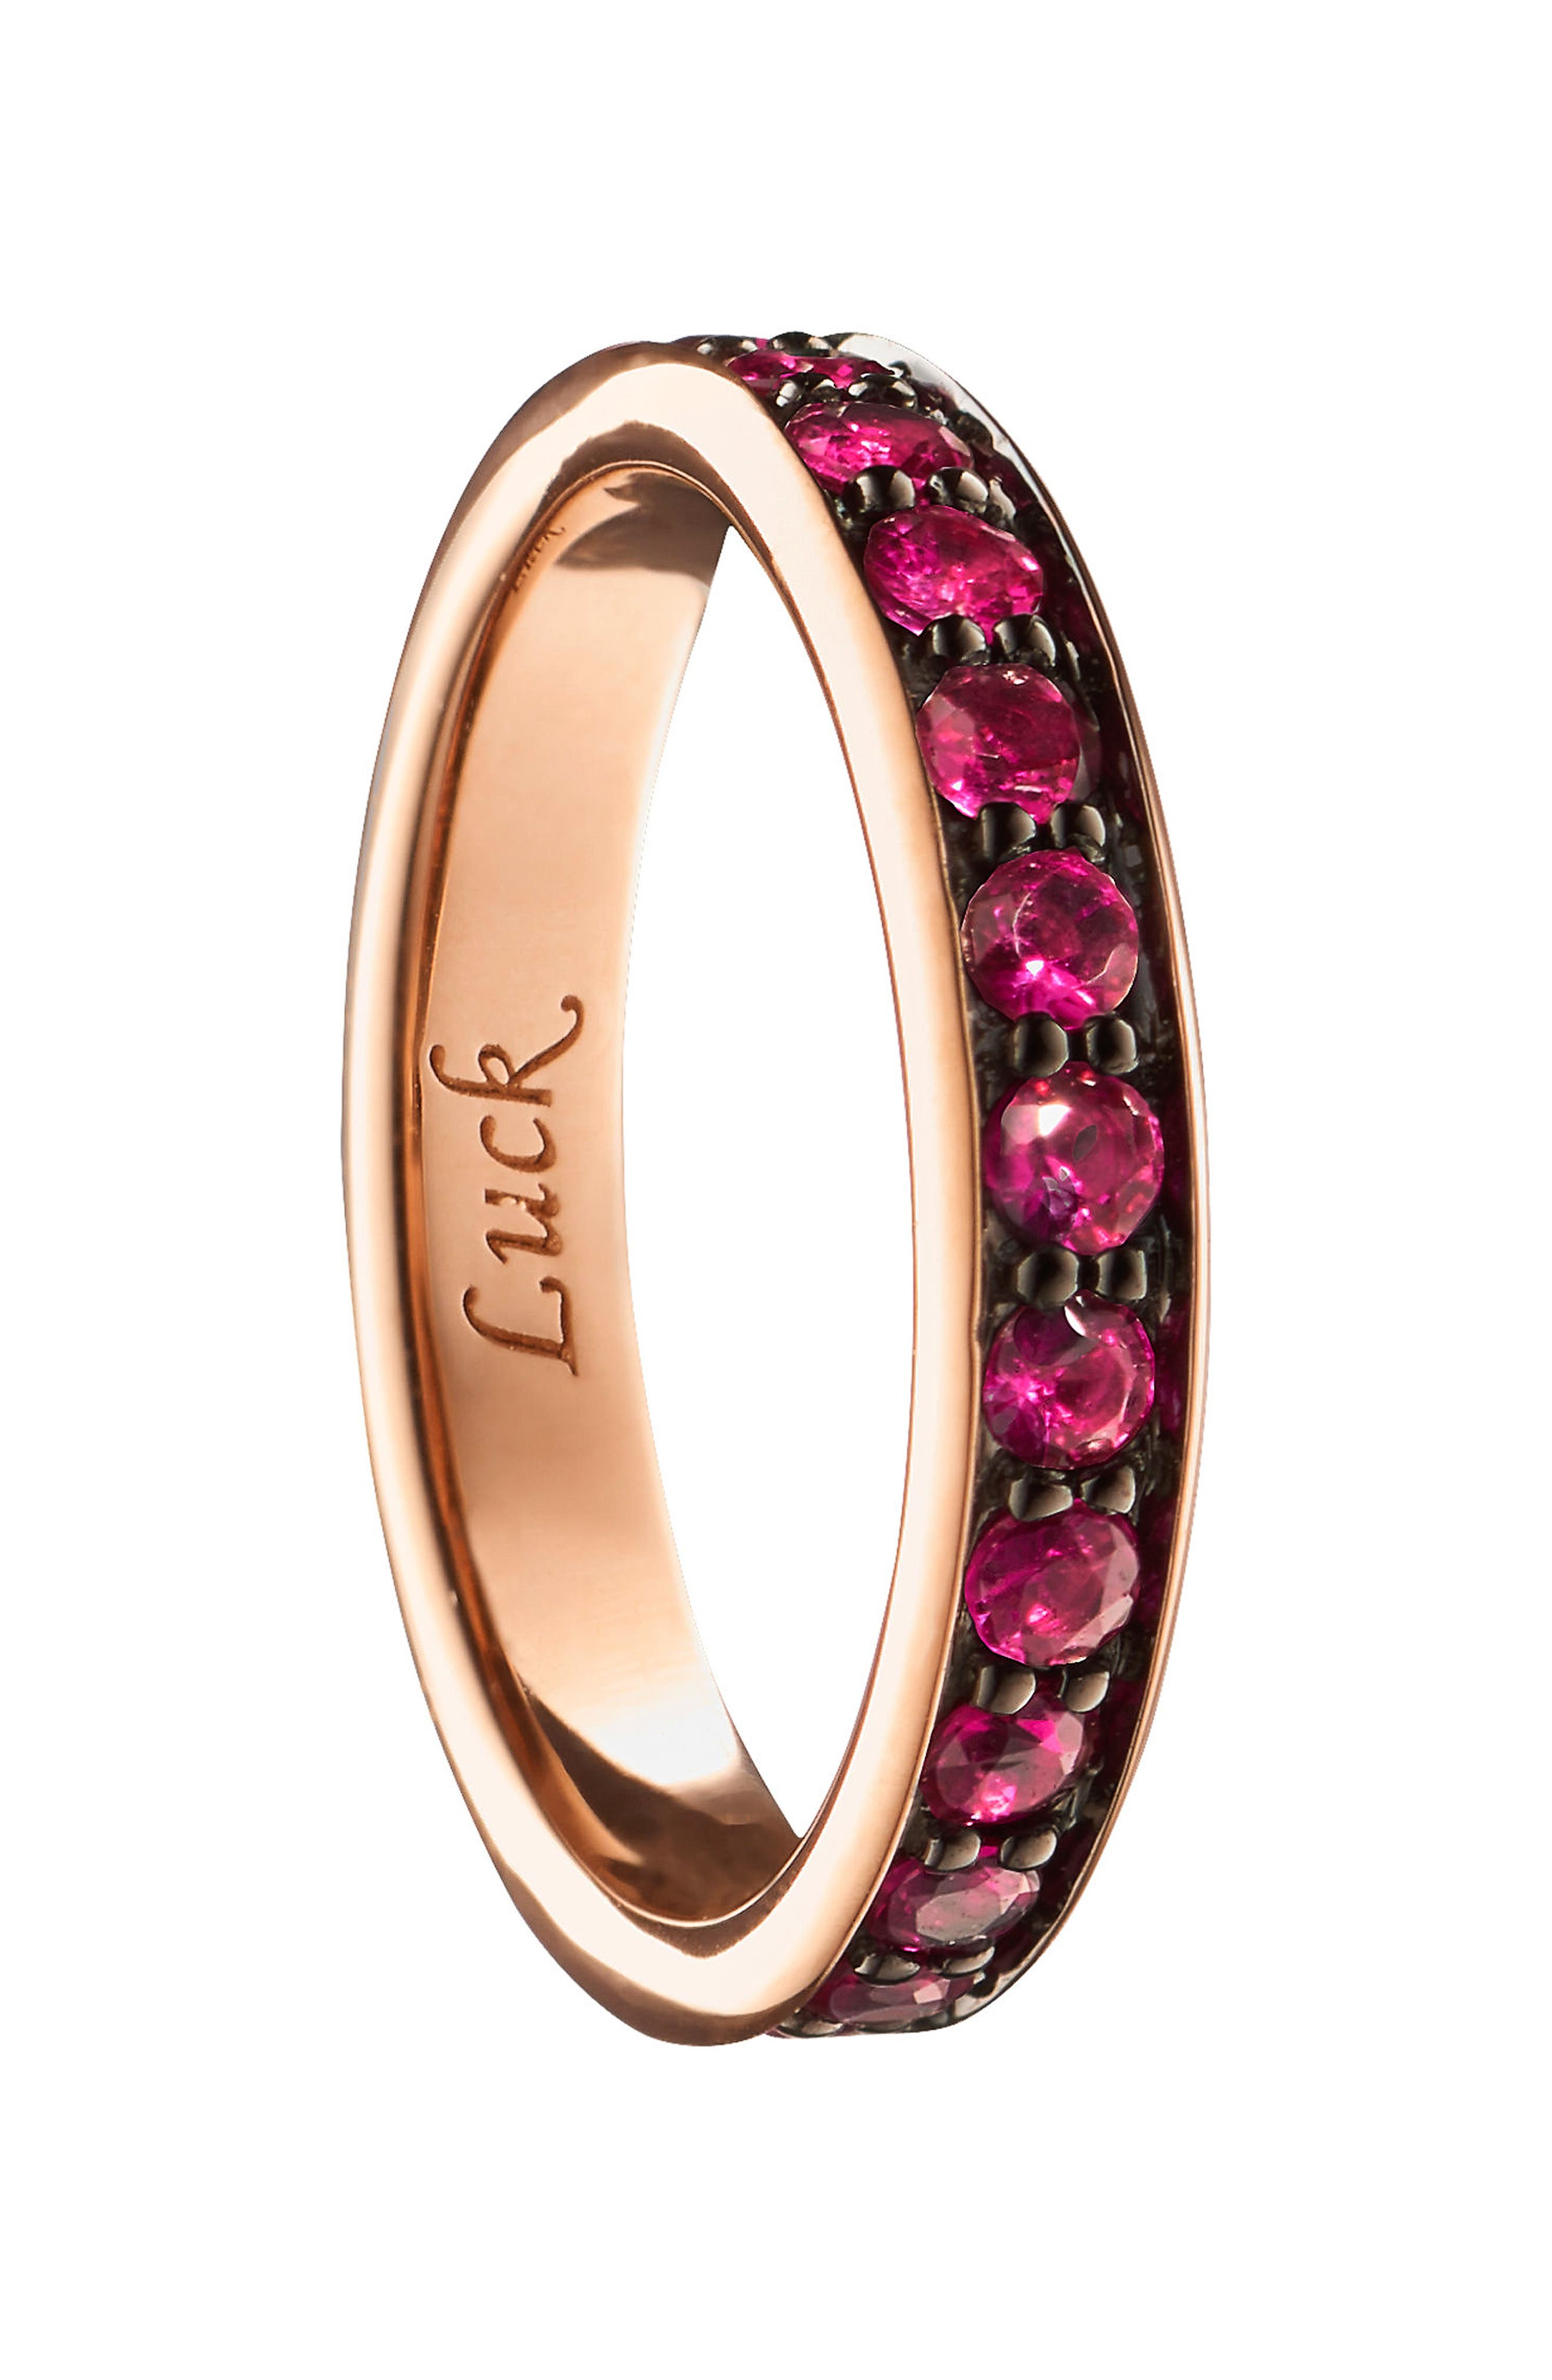 LUCK RUBY POESY RING CHARM